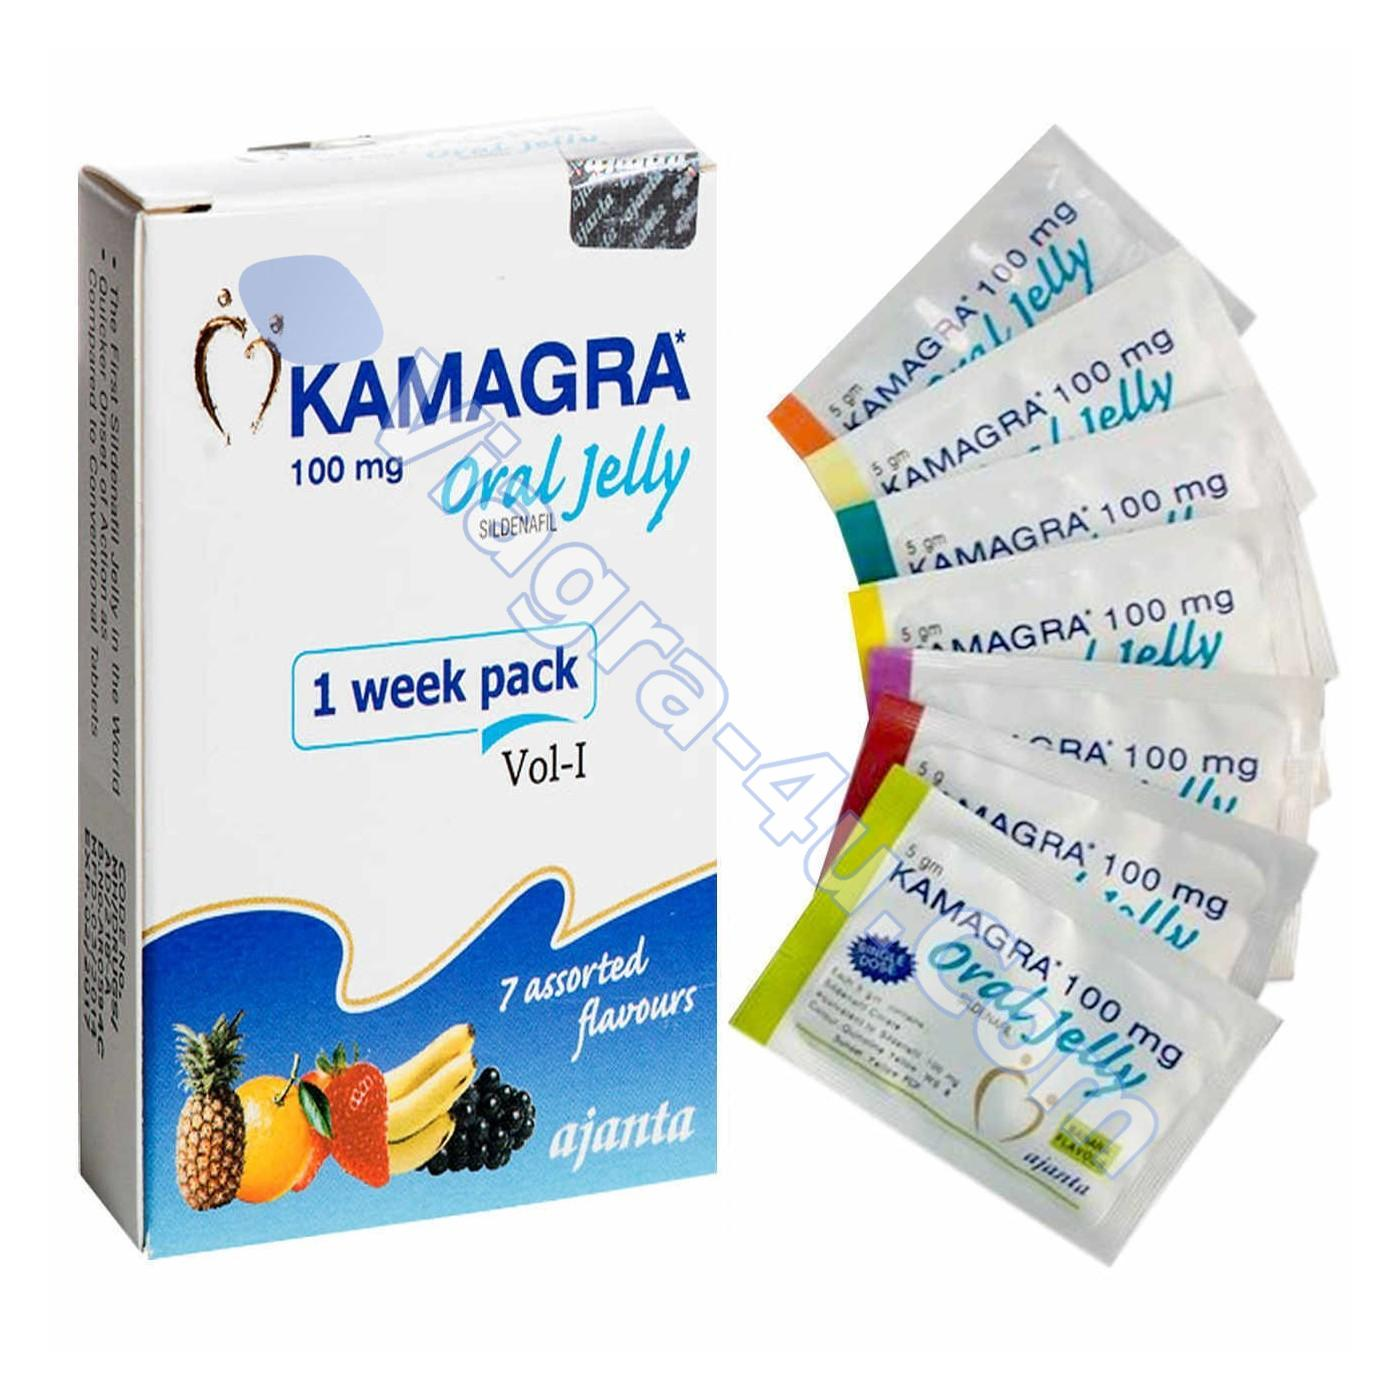 is kamagra 100mg oral jelly safe